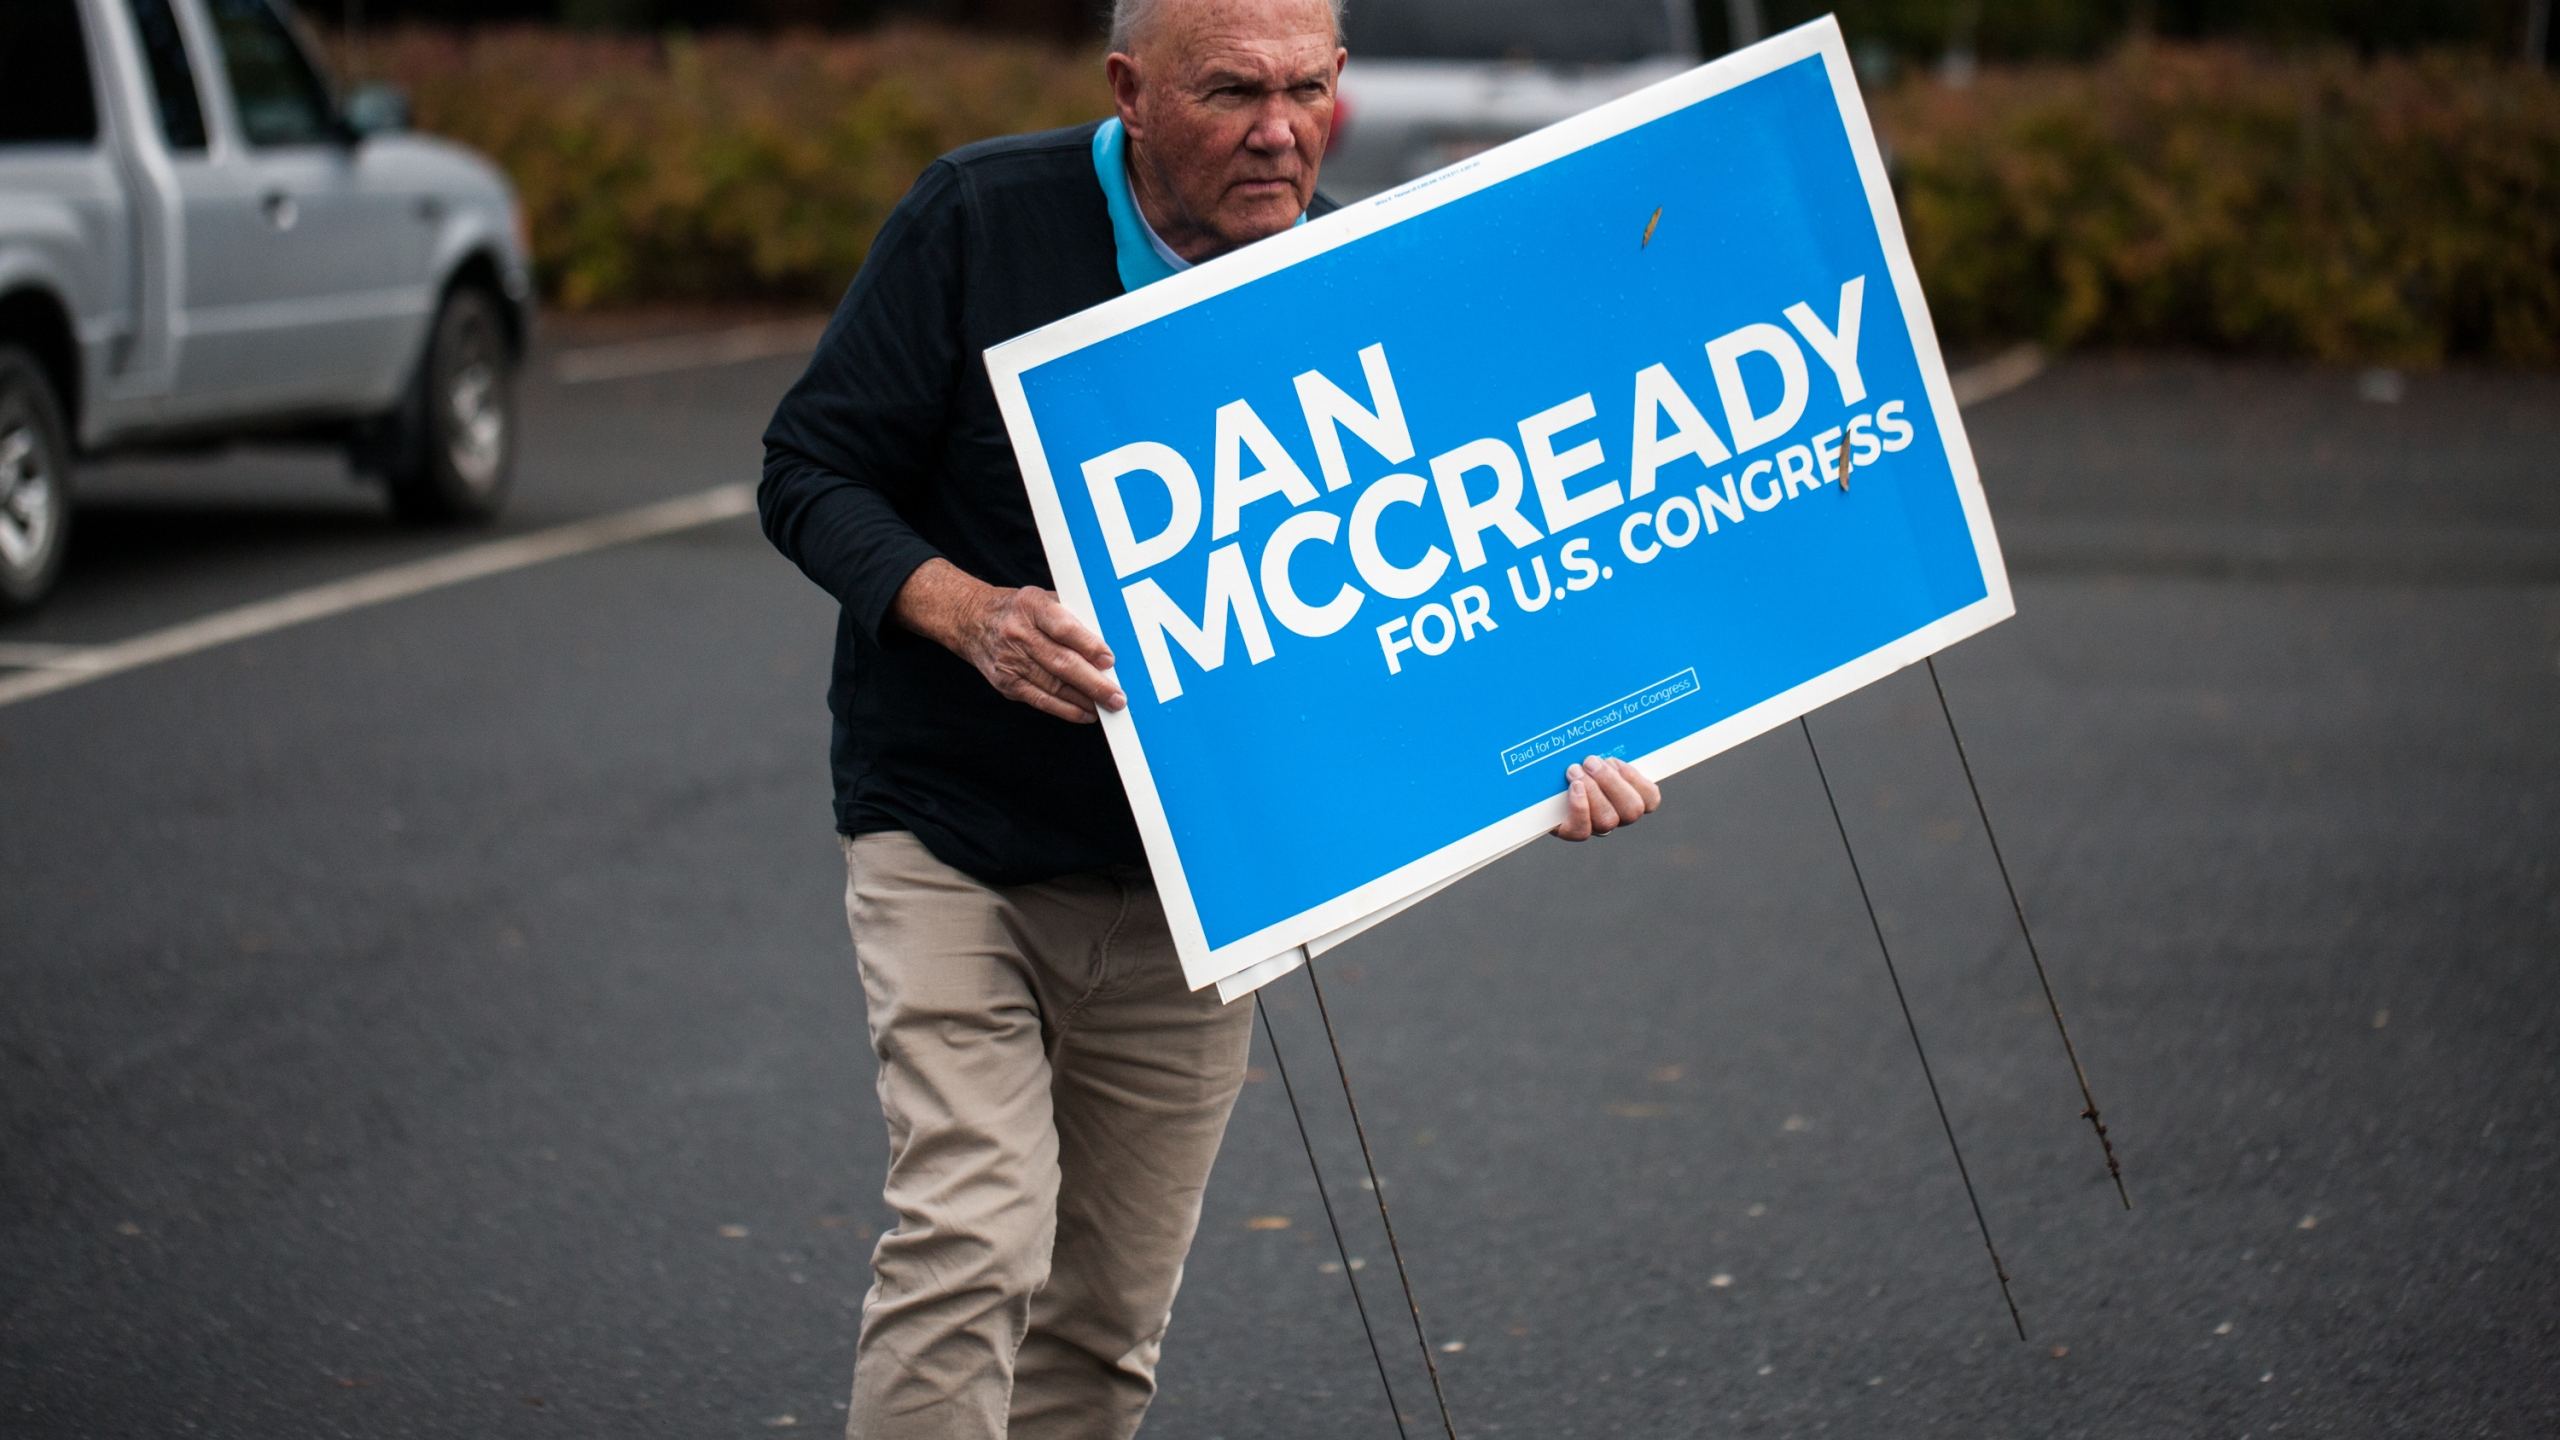 A campaign volunteer for Democratic House candidate Dan McCready carries signs on Nov. 6, 2018, in Charlotte, North Carolina. (Credit: Logan Cyrus / AFP / Getty Images)